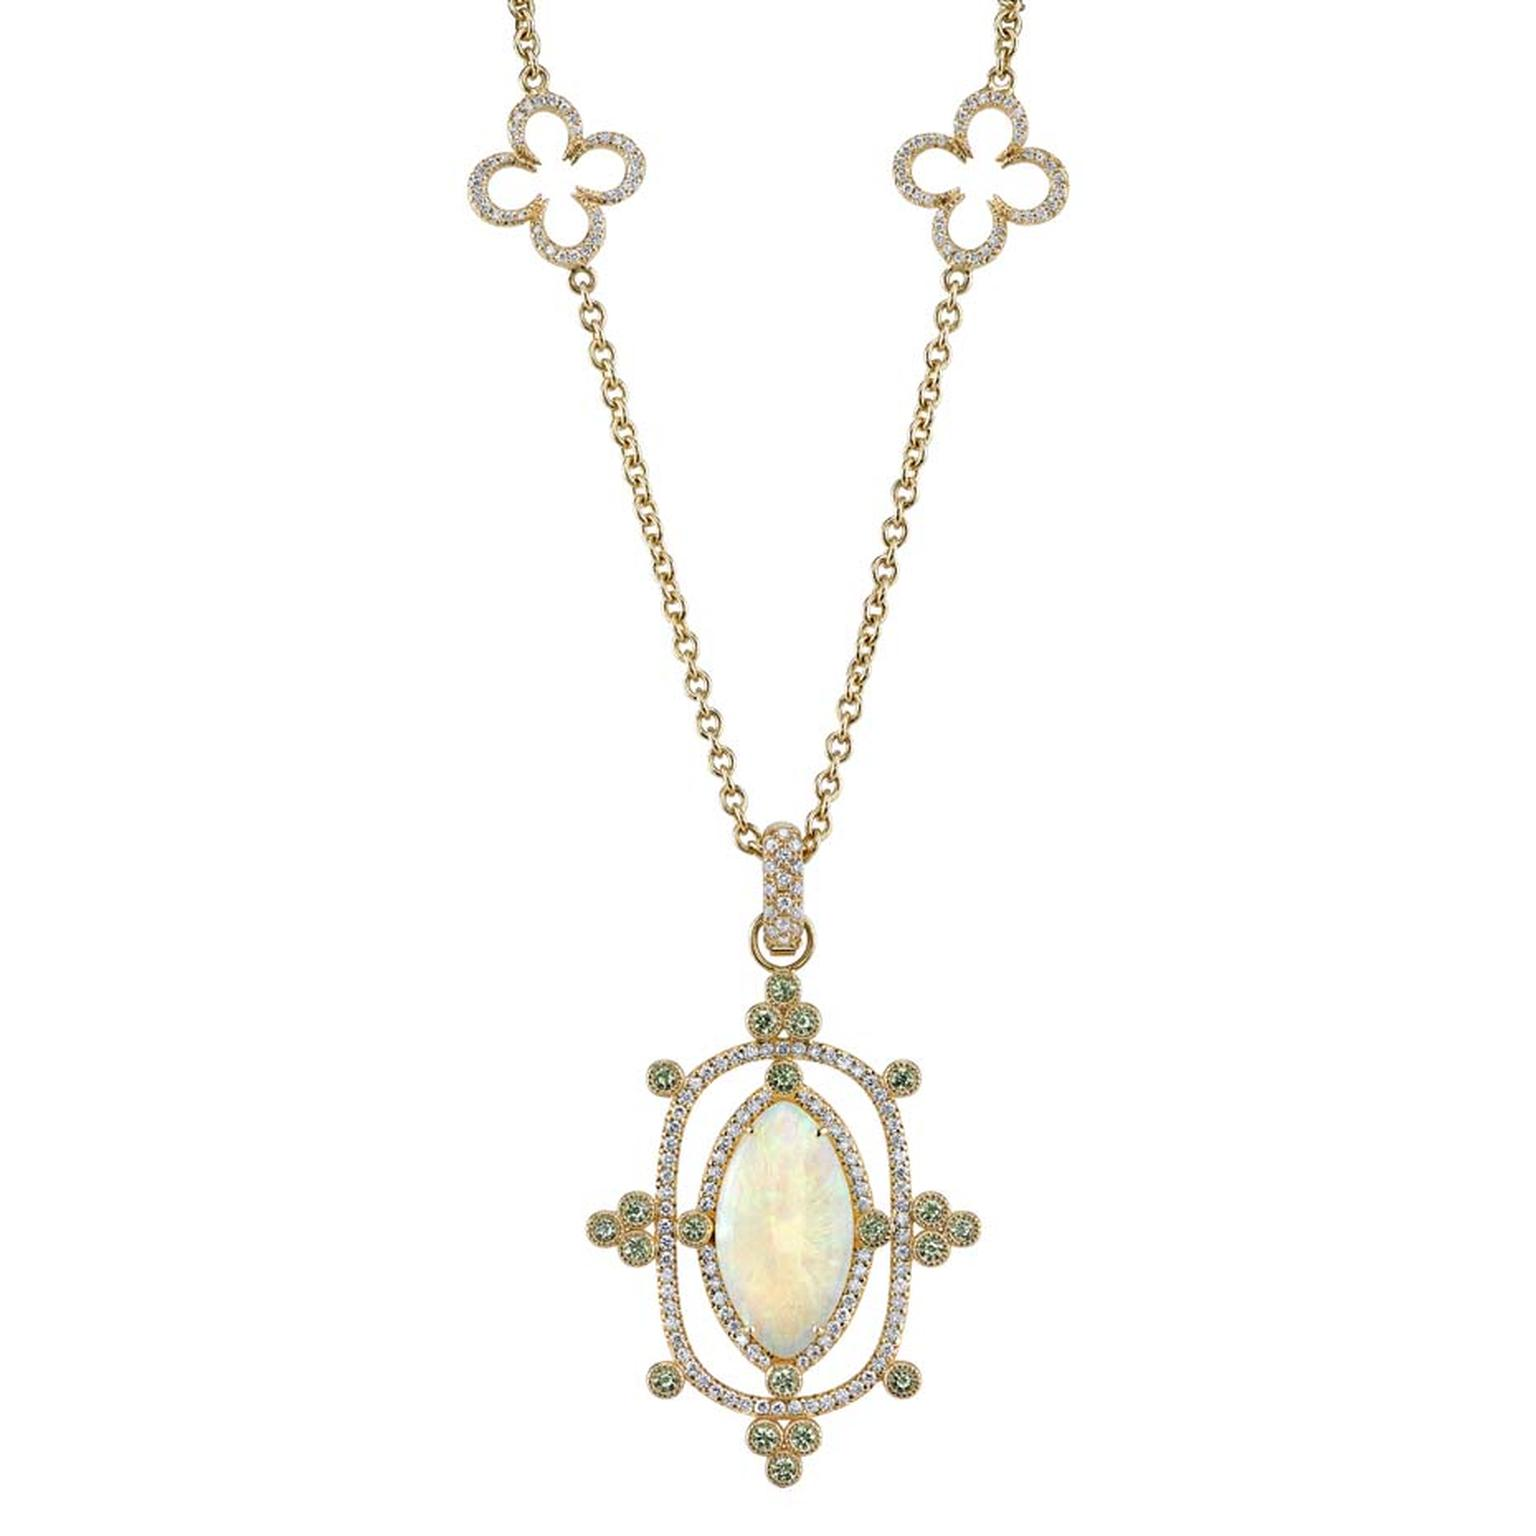 Erica Courtney Interstellar Opal pendant on a Buff Clover chain necklace. The 5.12ct Coober Pedy opal is highlighted by diamonds and demantoid garnets, and hangs from a yellow gold chain.